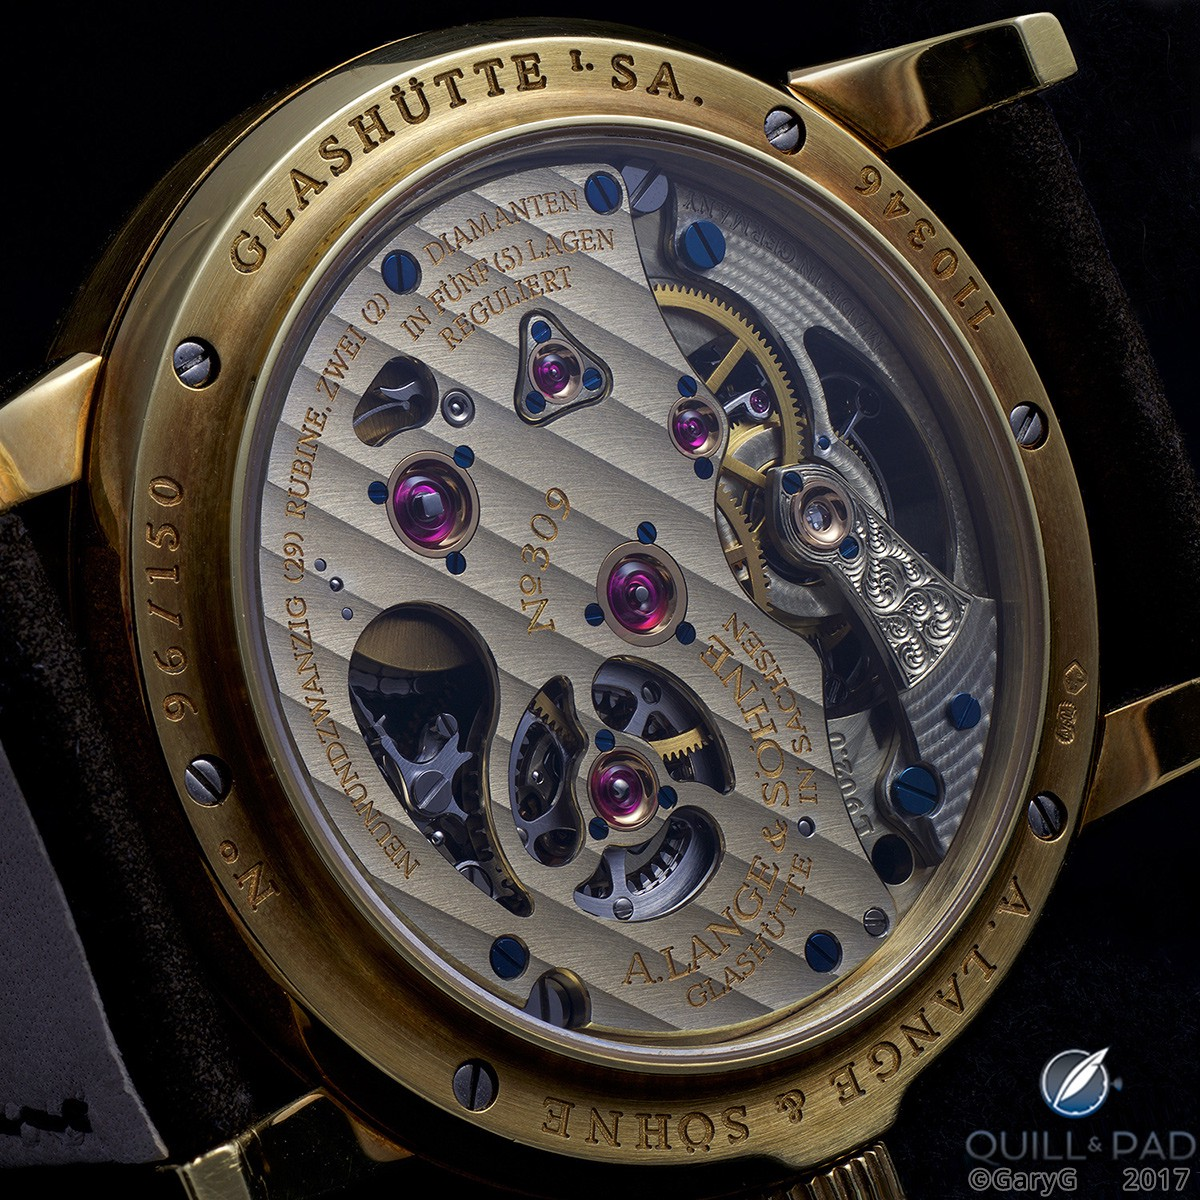 Concealing its secrets: solid three-quarter plate of the A. Lange & Söhne Pour le Mérite Tourbillon